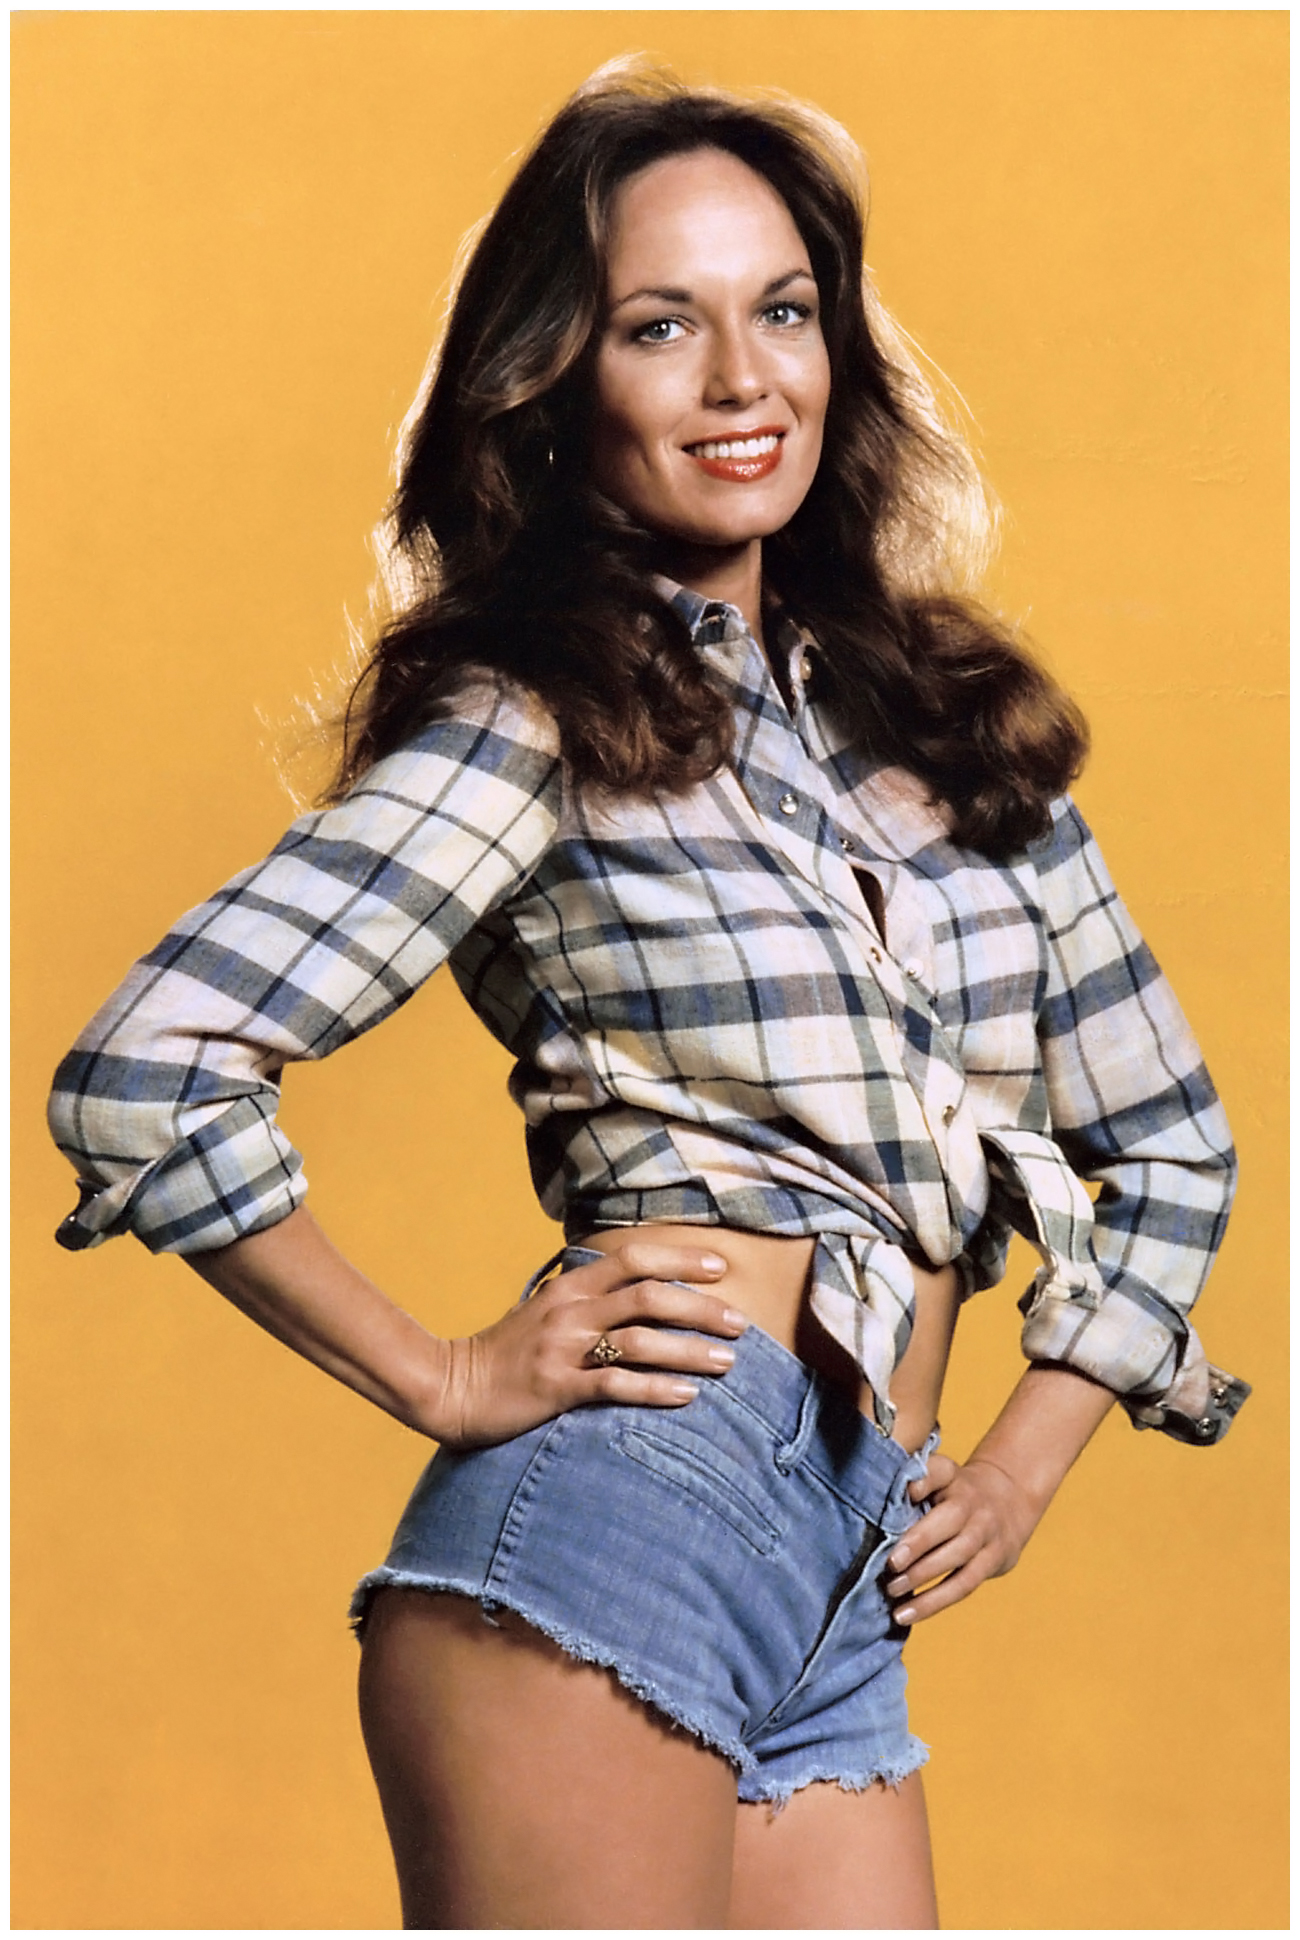 Daisy Duke: neither a model of feminism nor progressive social thought, but unequivocally a model of short shorts.